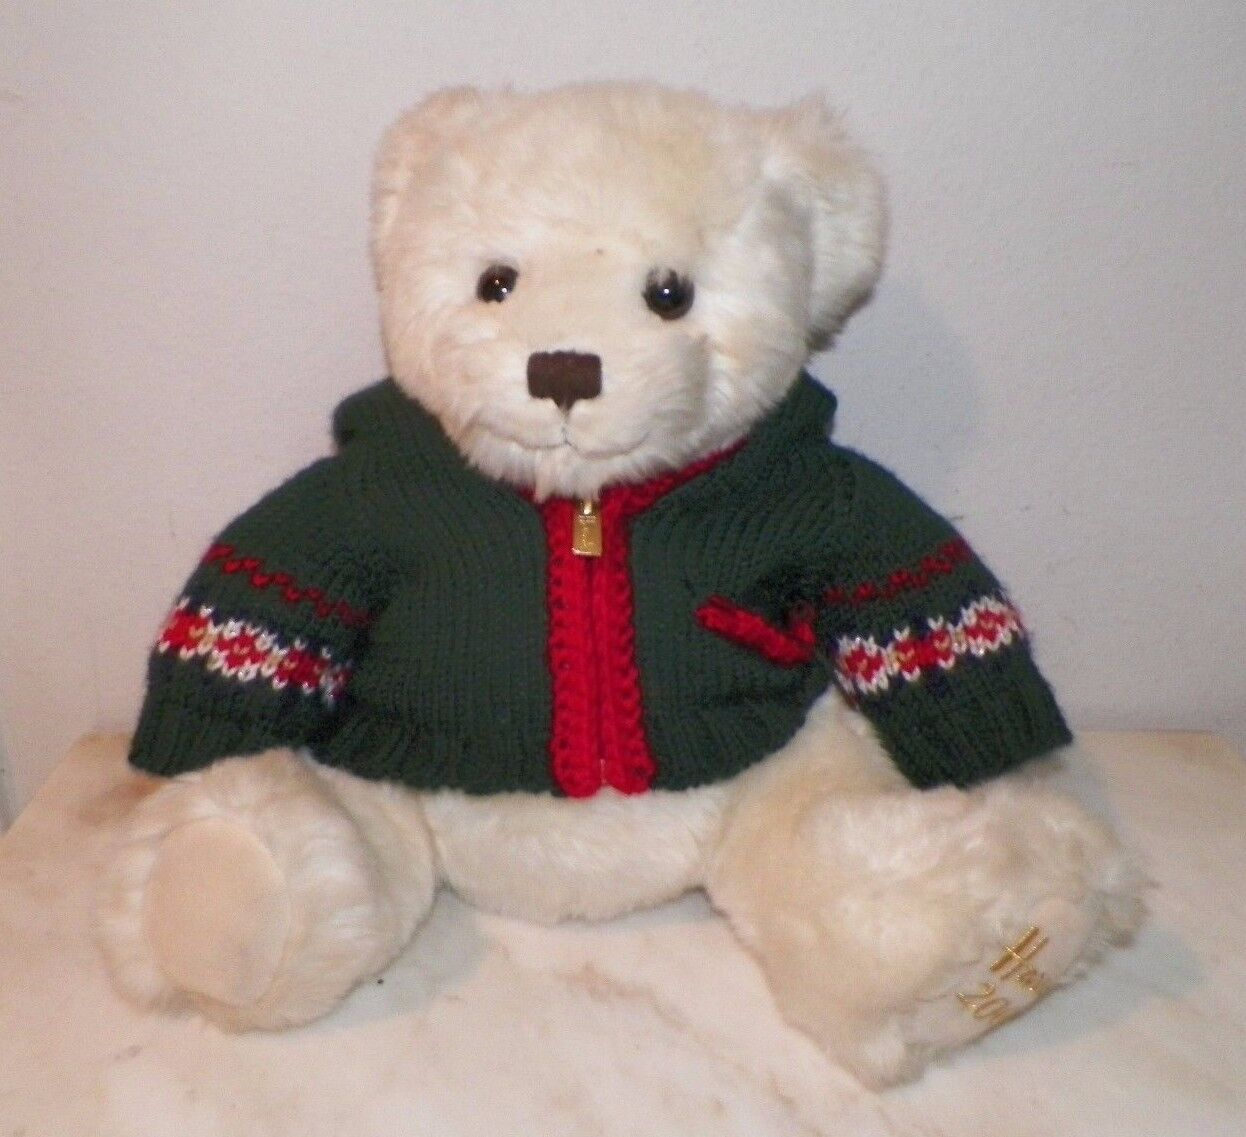 HARRODS bianca  CHRISTMAS BEAR DRESSED STUFFED PLUSH 13  JOINTED 2006